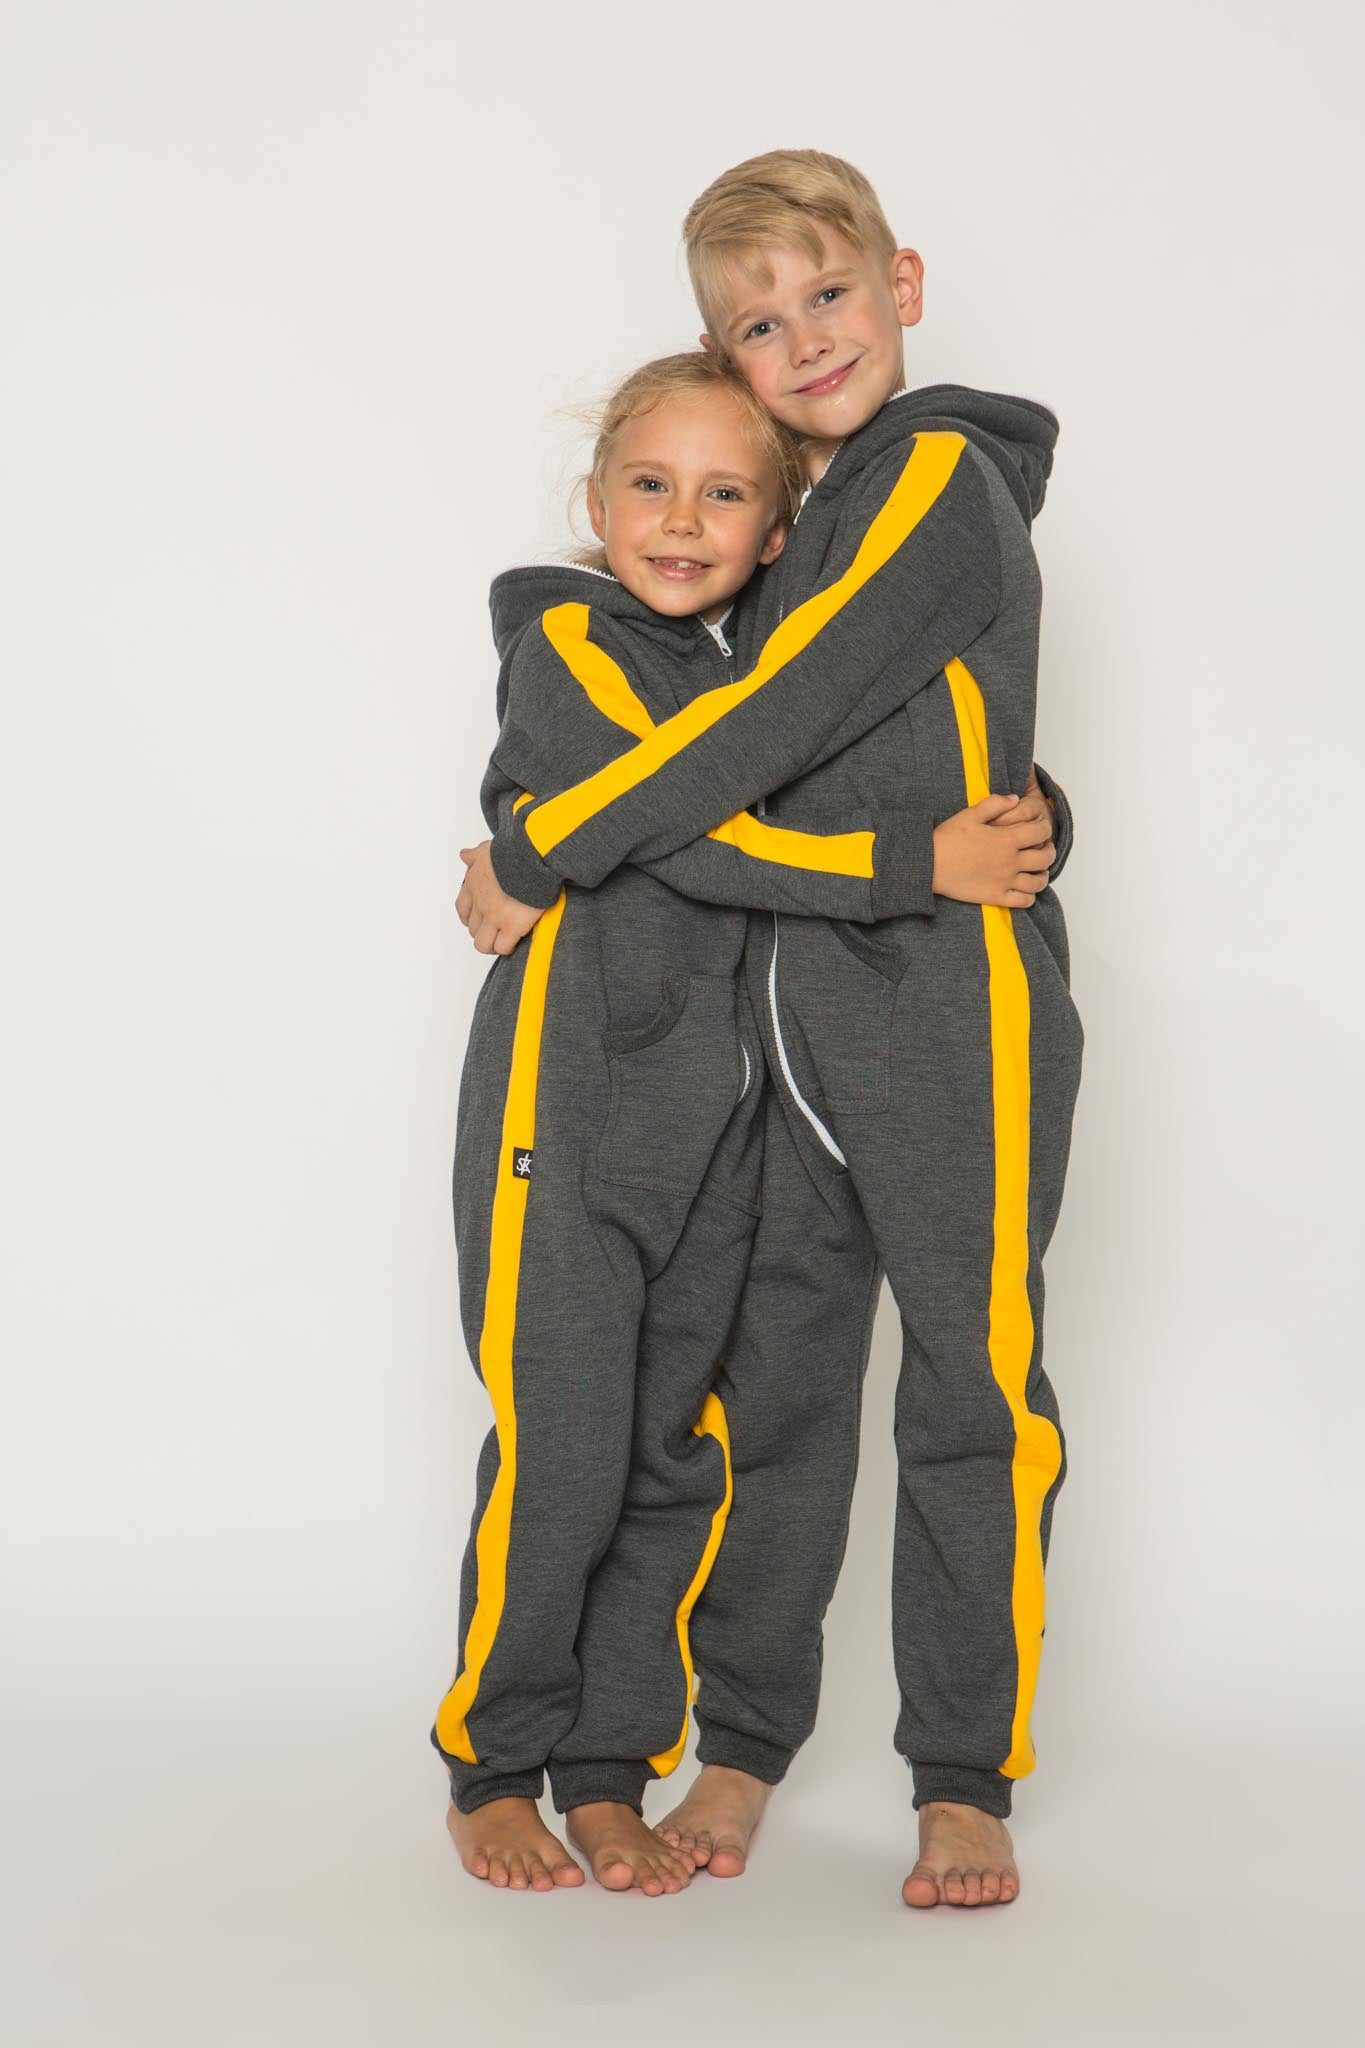 Sofa Killer dark grey unisex kids onesie with yellow vertical lines